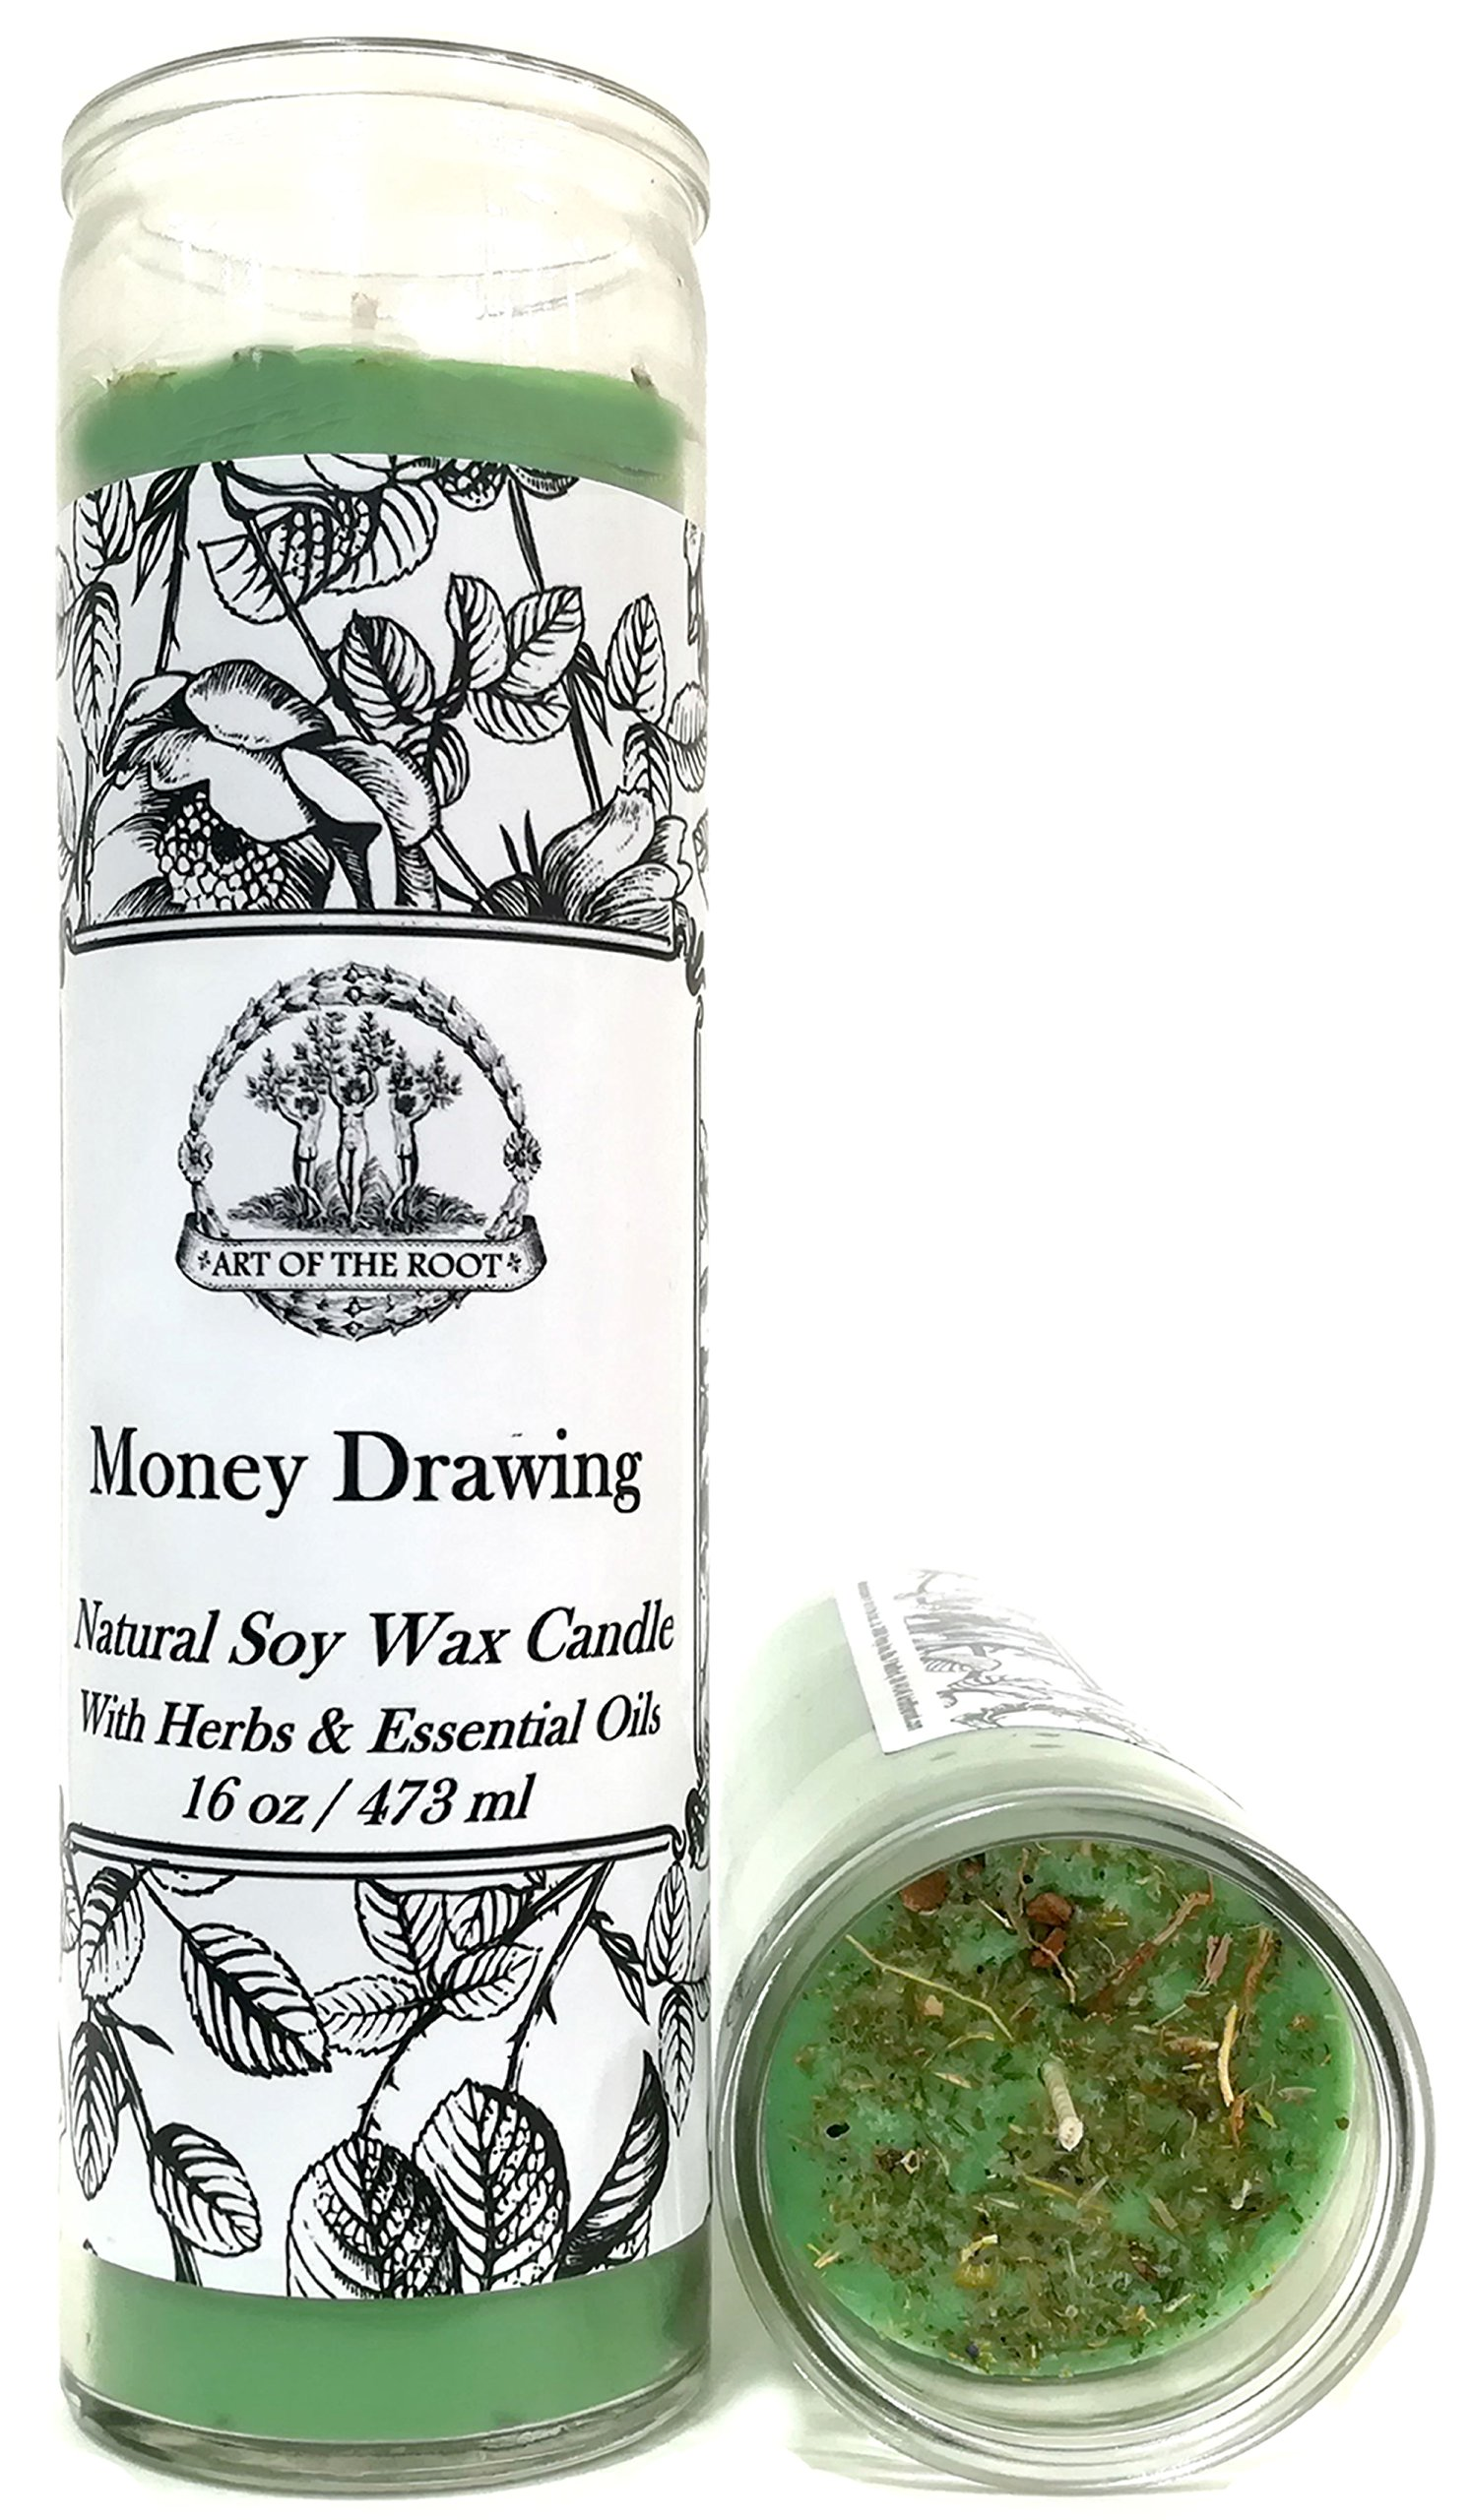 Art of the Root Money Drawing Scented 7 Day SOY Herbal Spell Candle (Fixed) for Wealth, Financial Security, Propserity (Wiccan, Pagan, Hoodoo, Magick) by Art of the Root